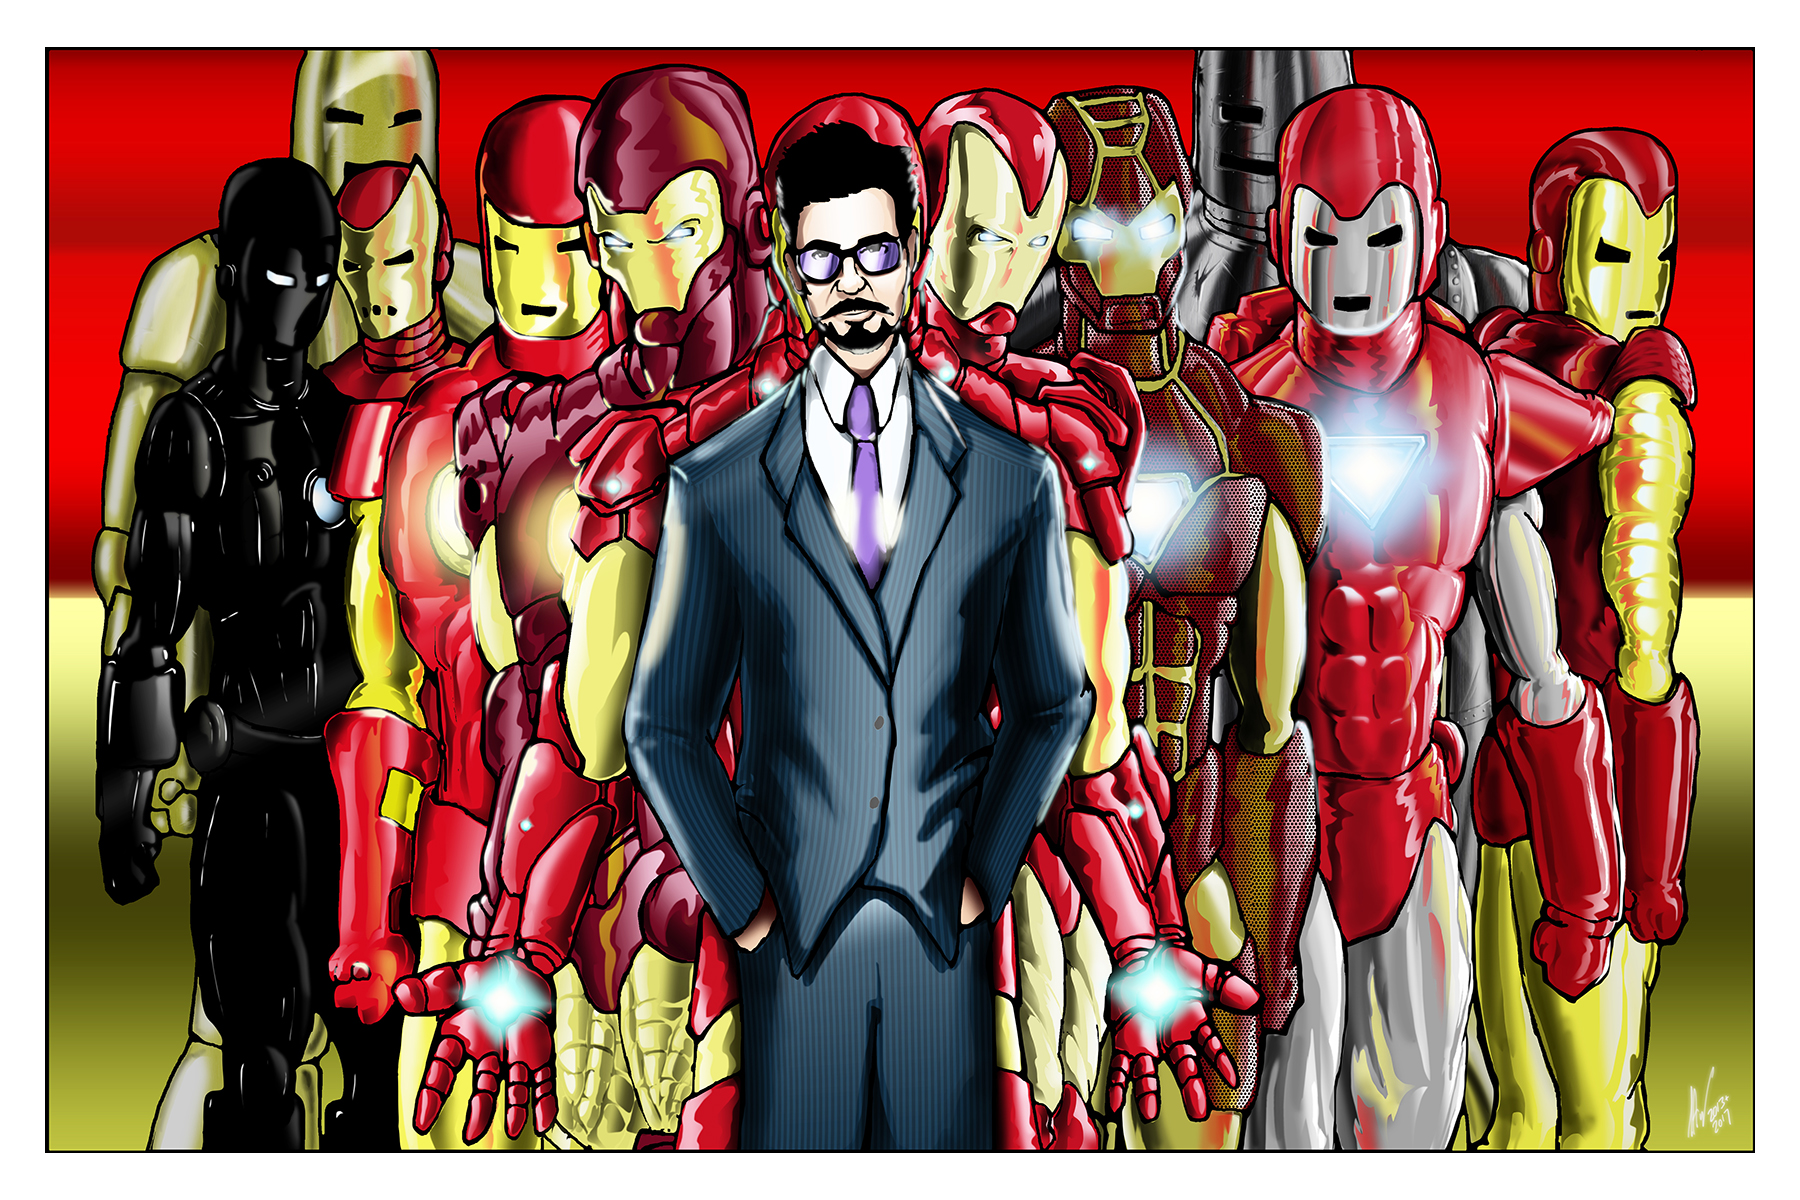 Iron Man-A Man and His Suits 11x17 copy.jpg